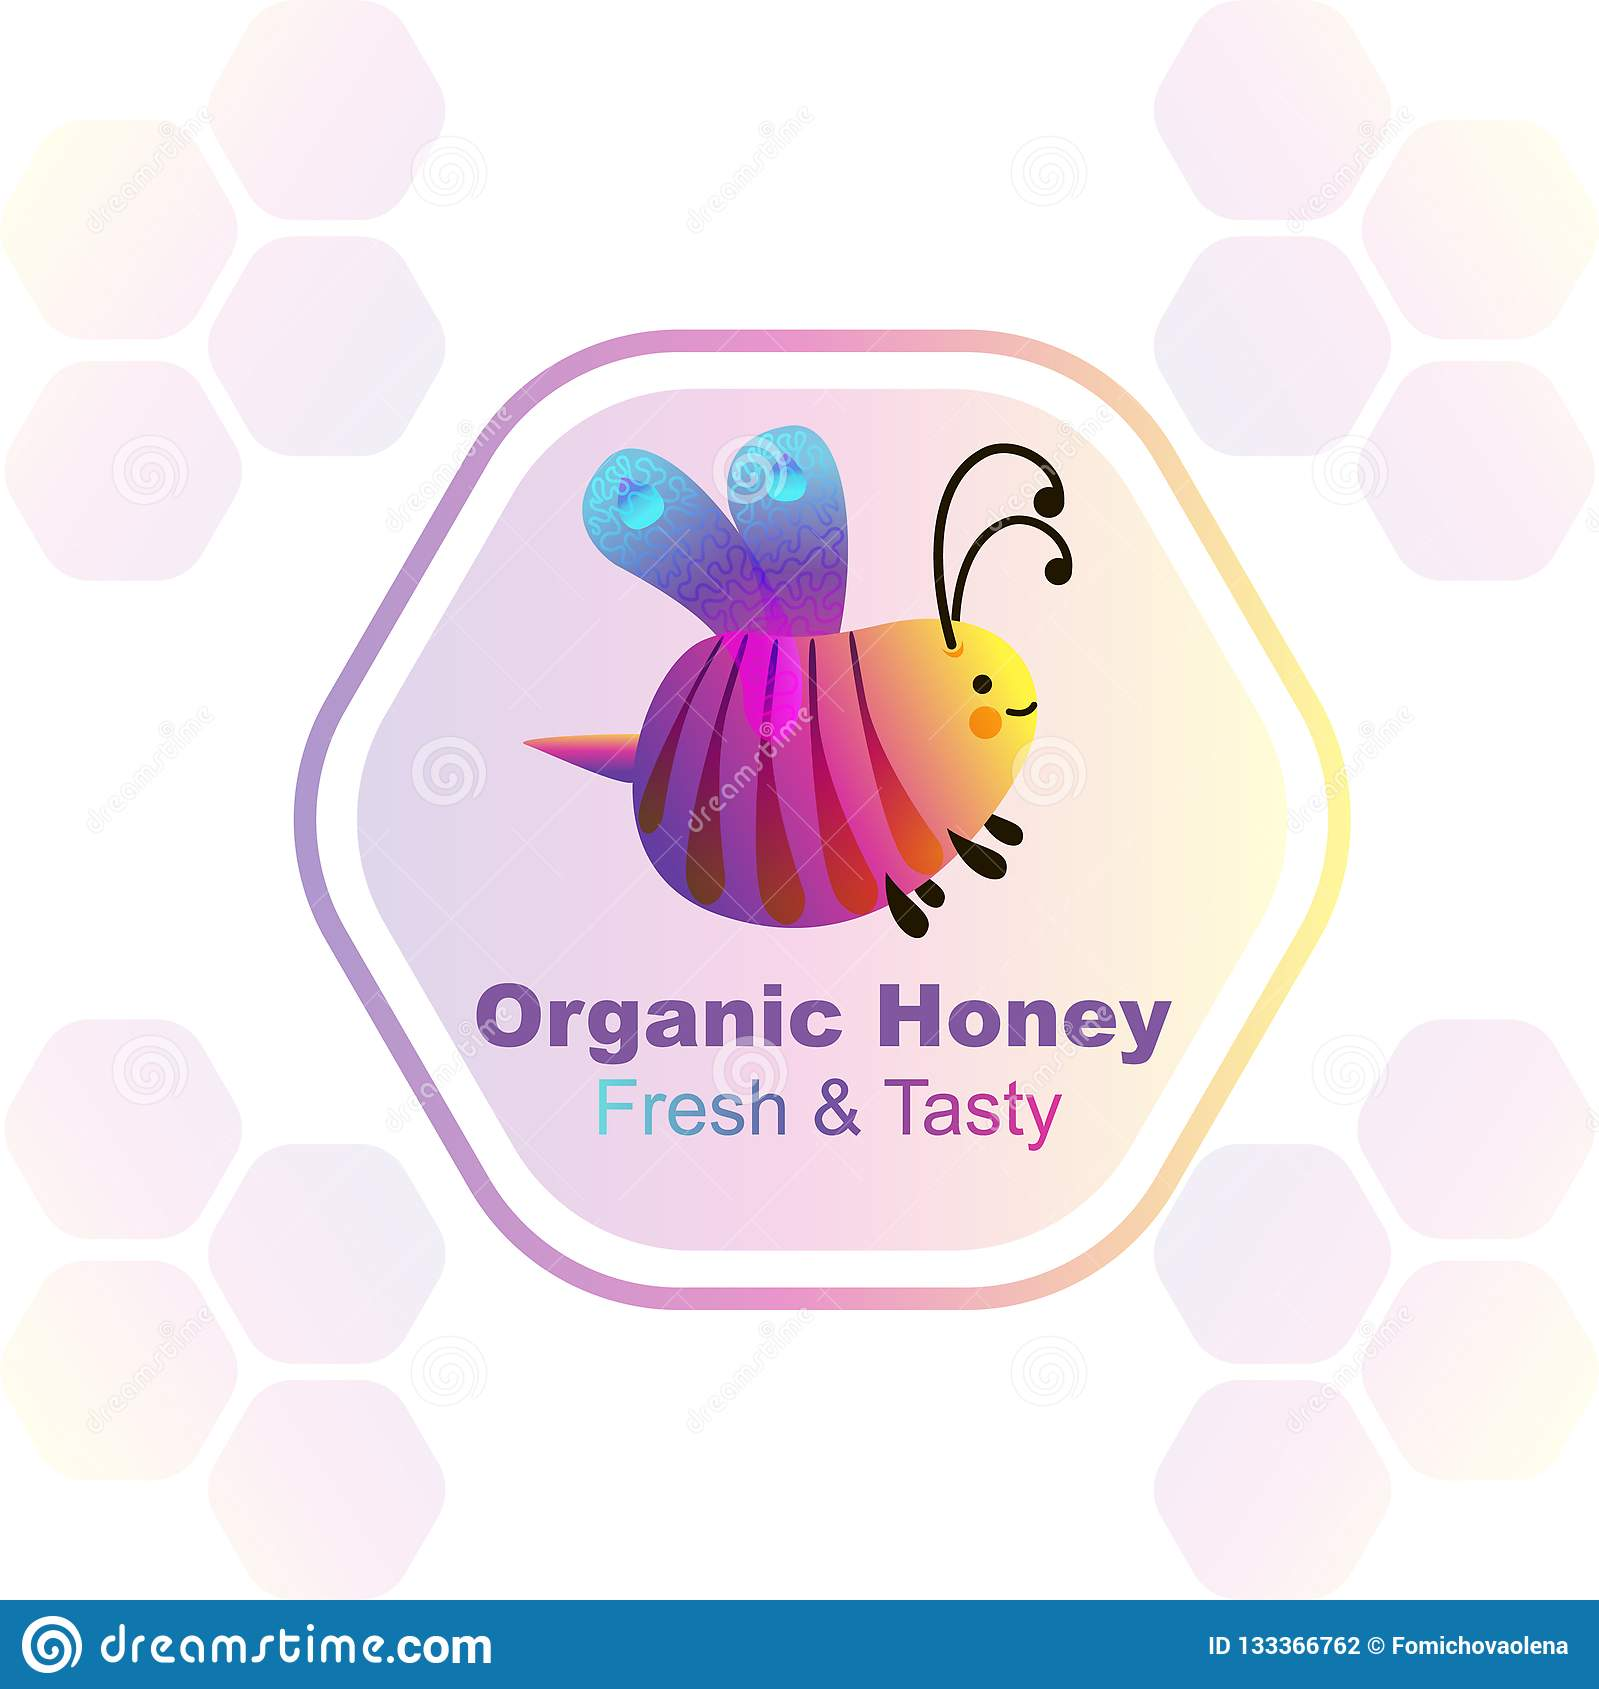 Colorful cartoon bright little bee logo. Smile and happy insect. Fluid geometric abstract shape